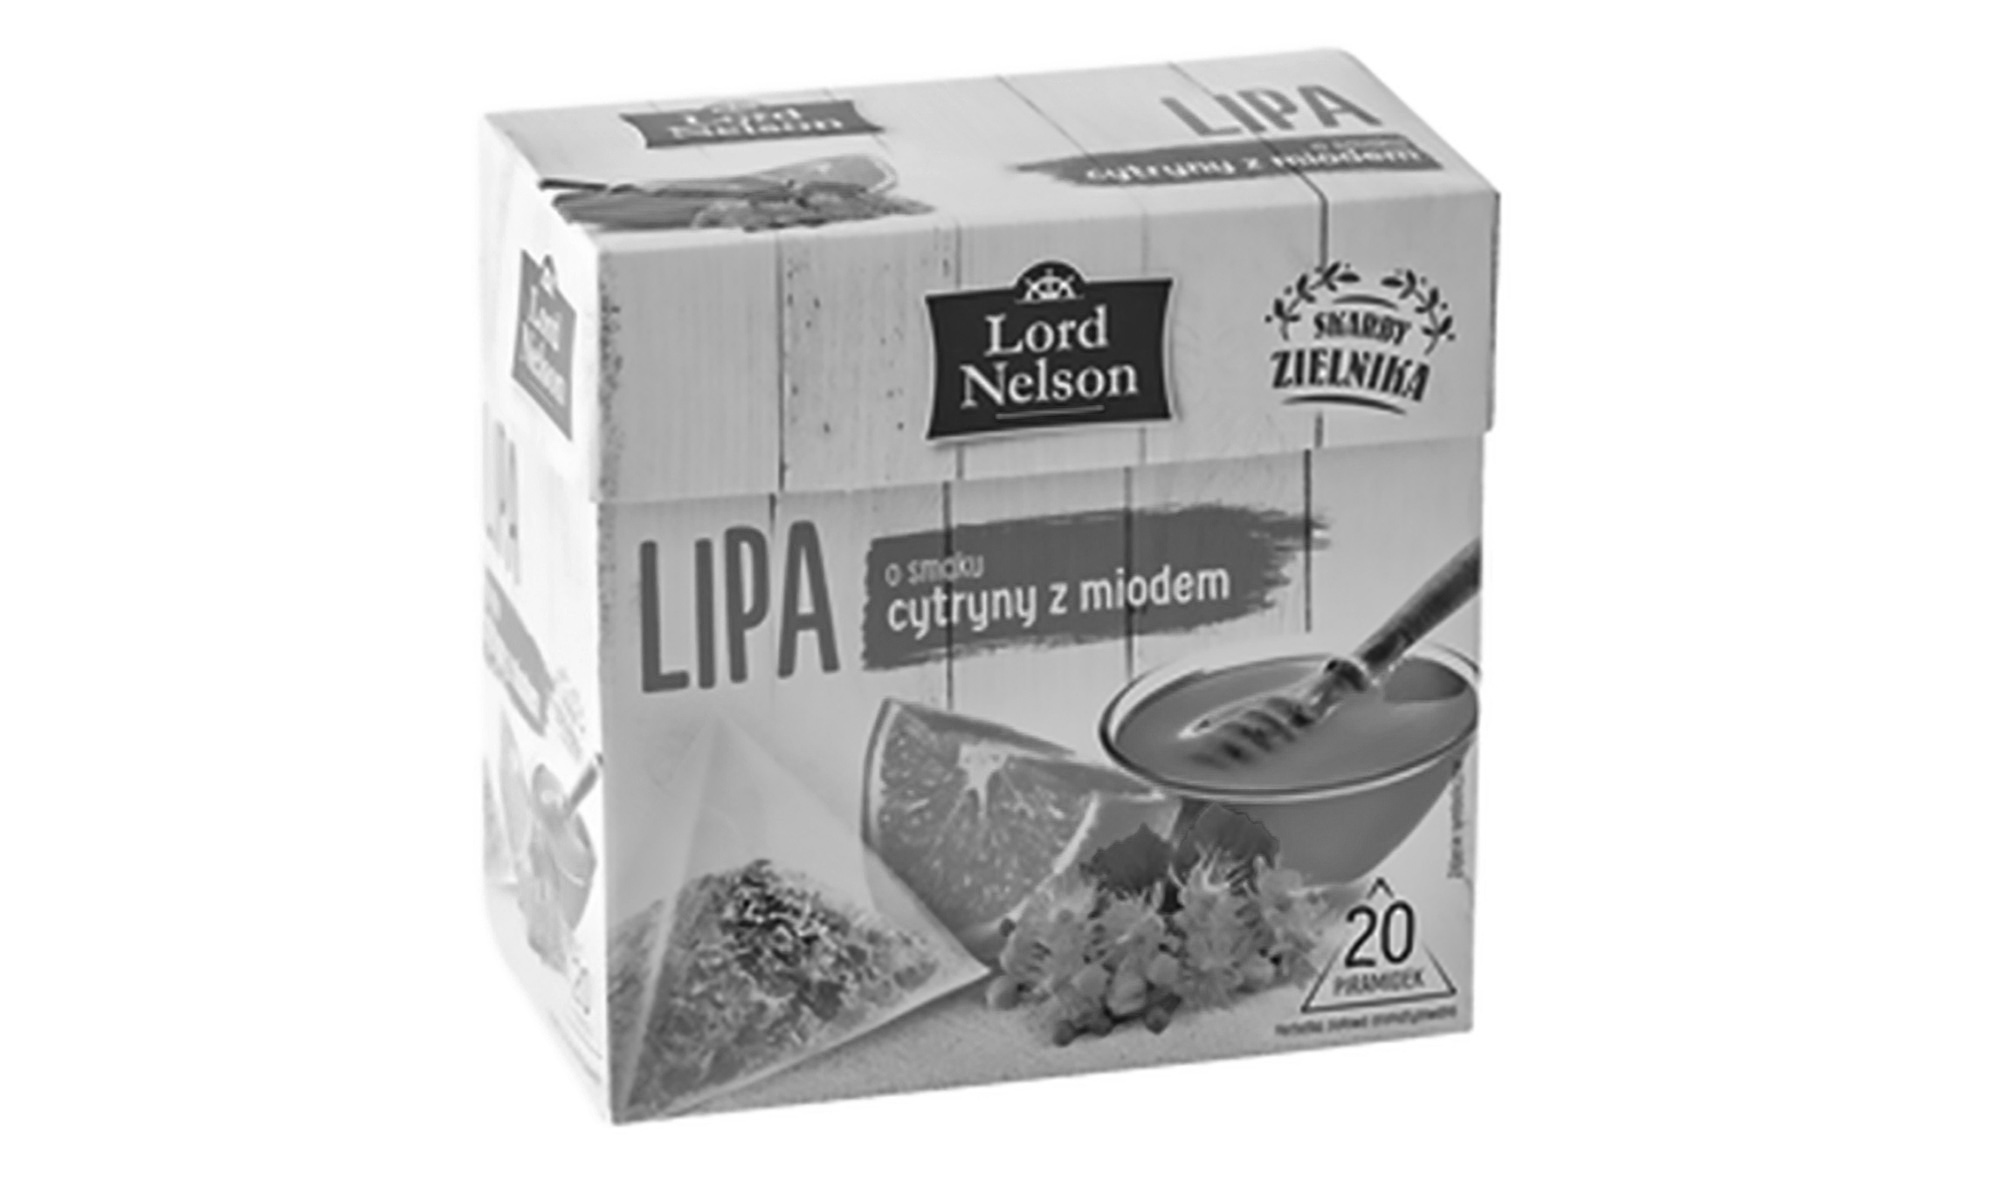 Lidl Withdraws Carcinogenic Lord Nelson Herbal Tea